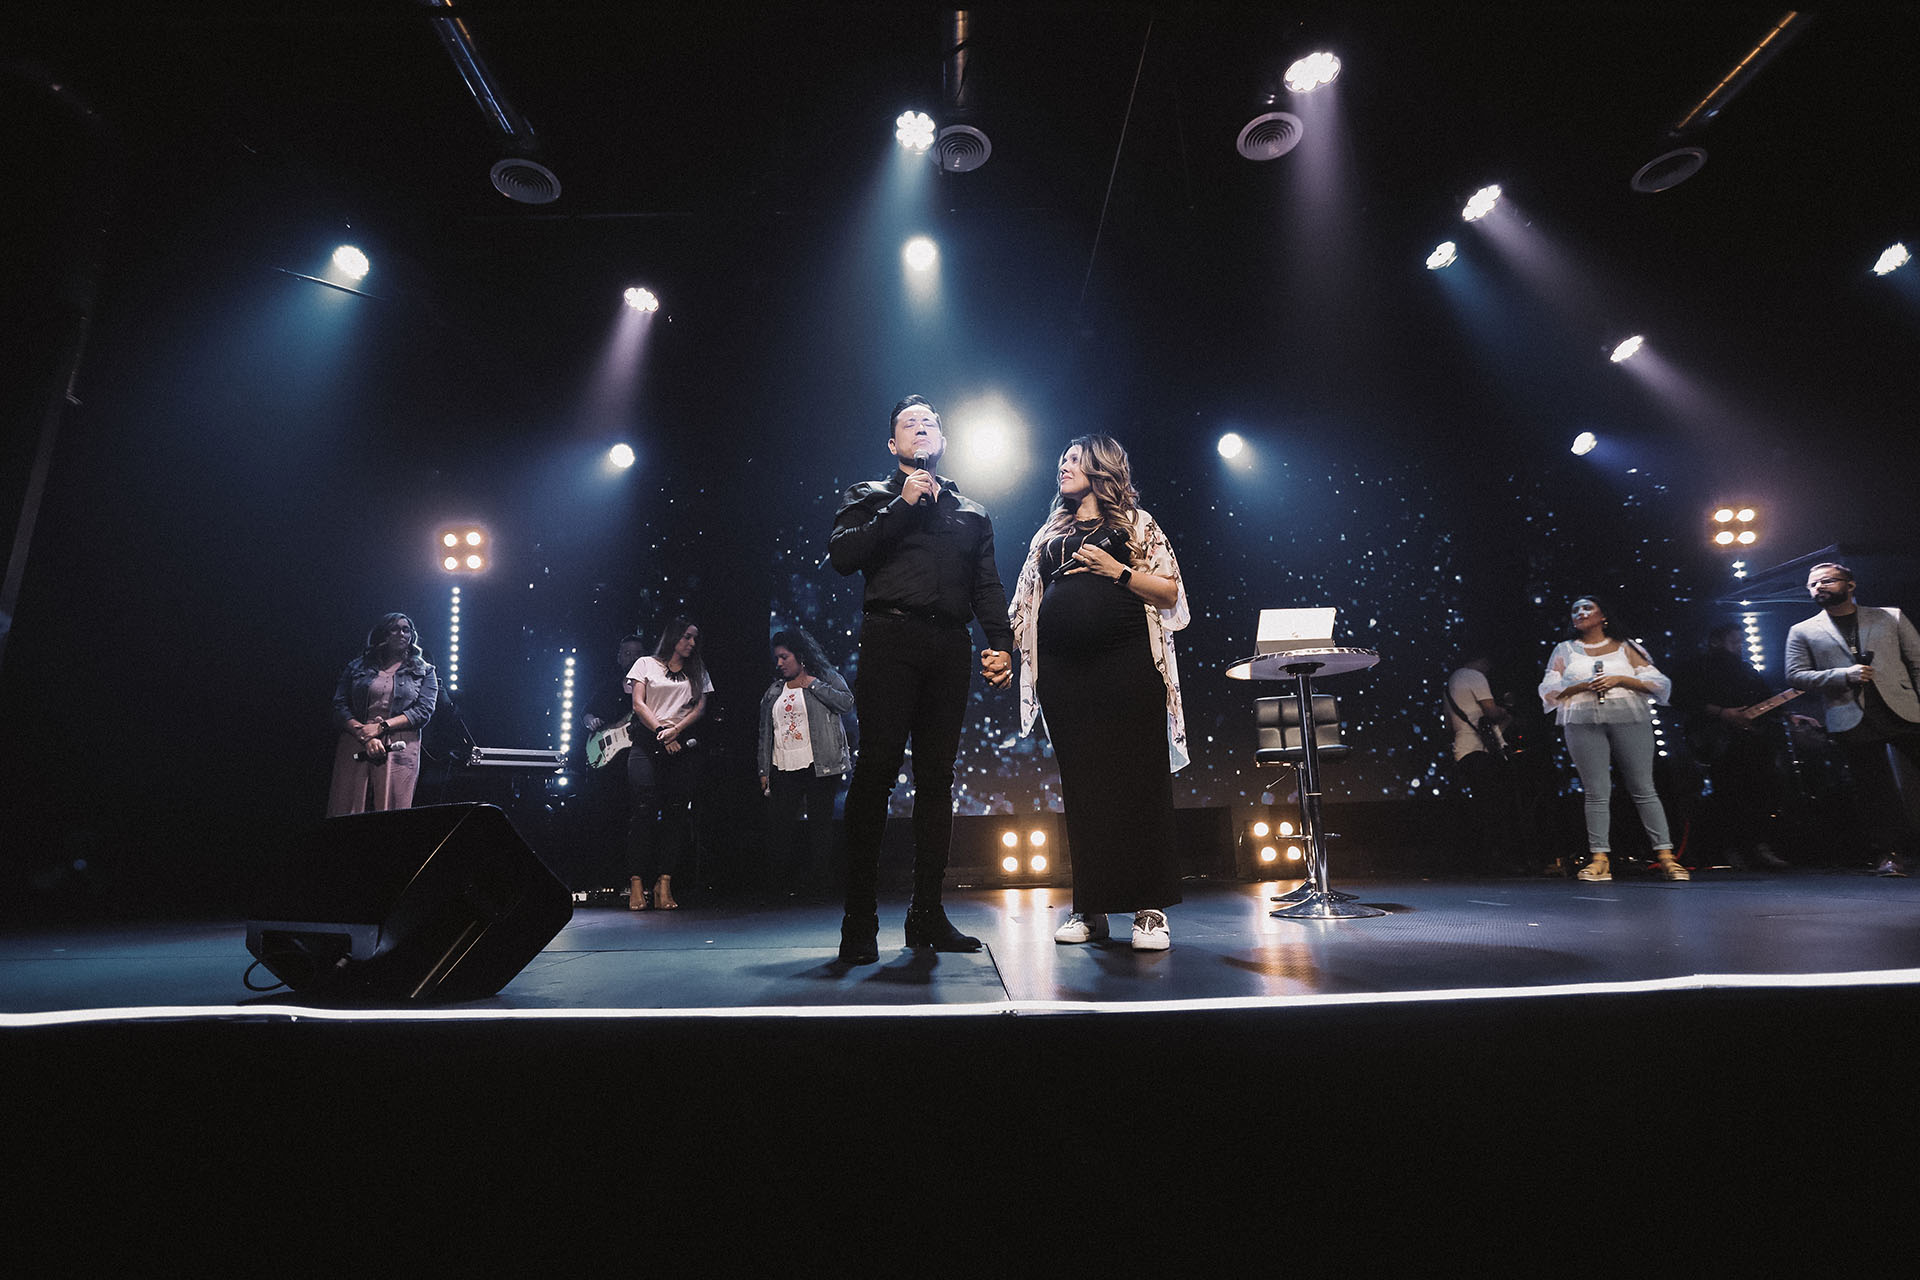 A Special Message from Senior Pastors Josiah and Marie Silva - We want to invite you to join us and so many others for this year's FREEDOMHOUSE CONFERENCE 2019! We want to see you there!Blessings,Pastor Josiah and Marie Silva